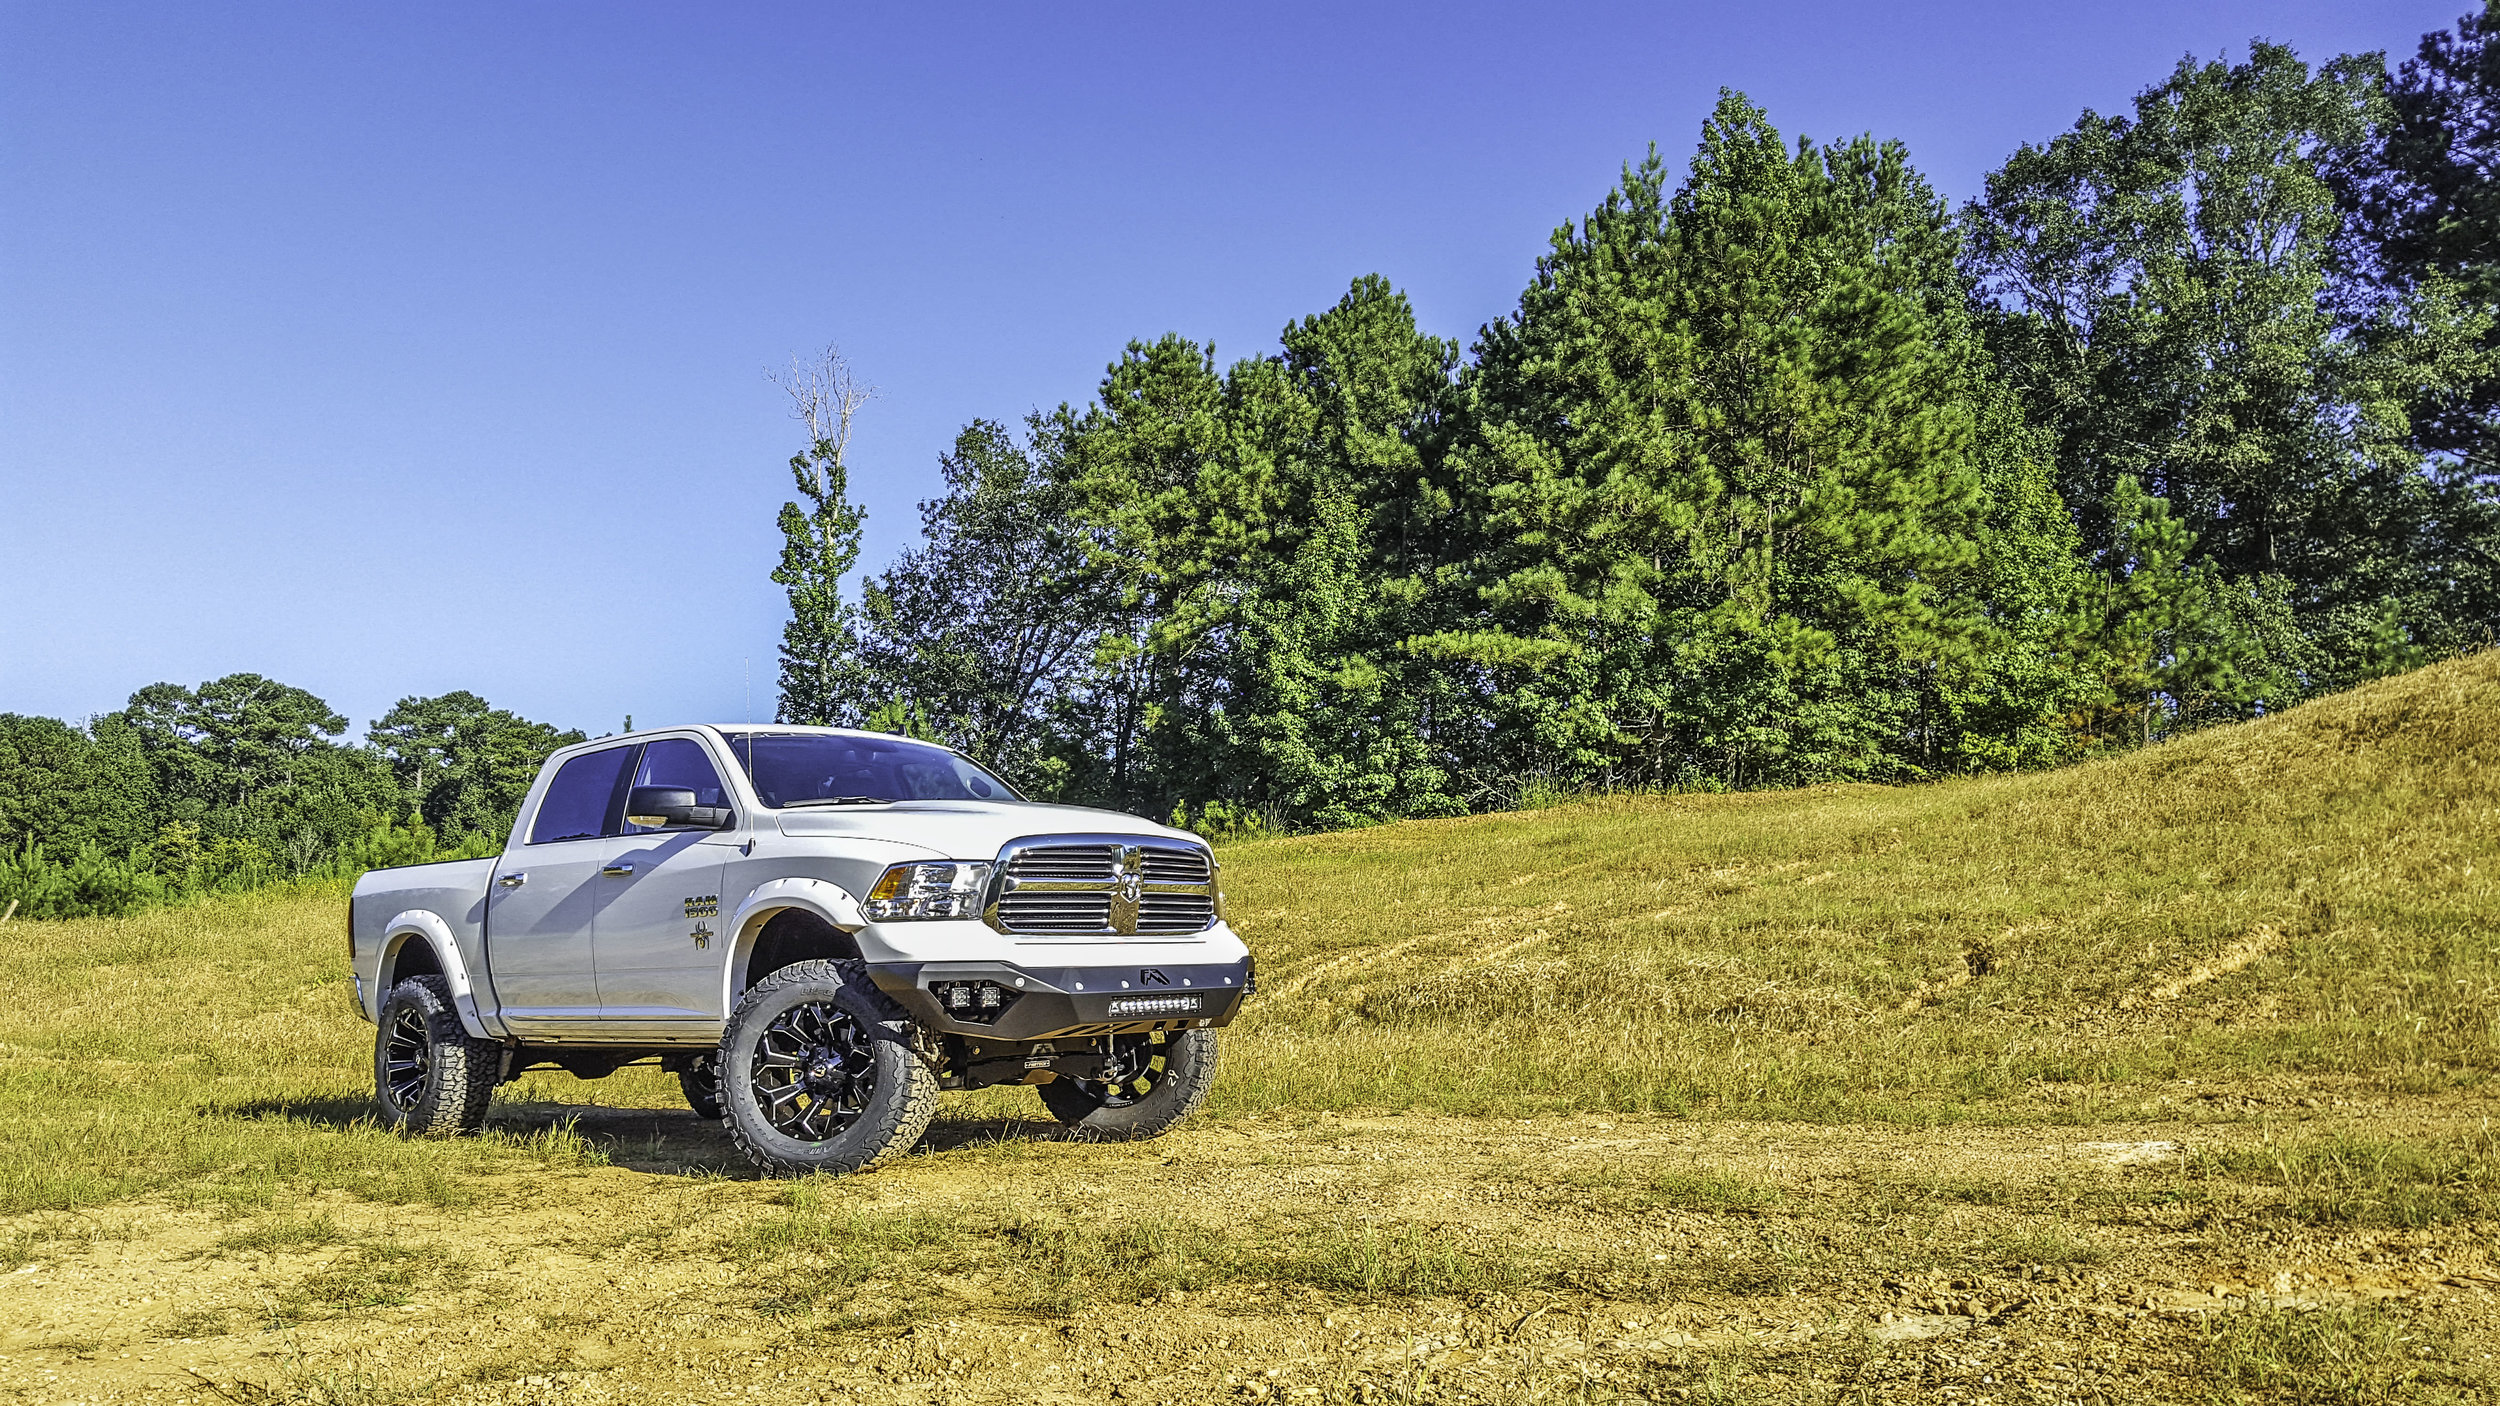 Ram BW White with Bumper Front Qtr.jpg